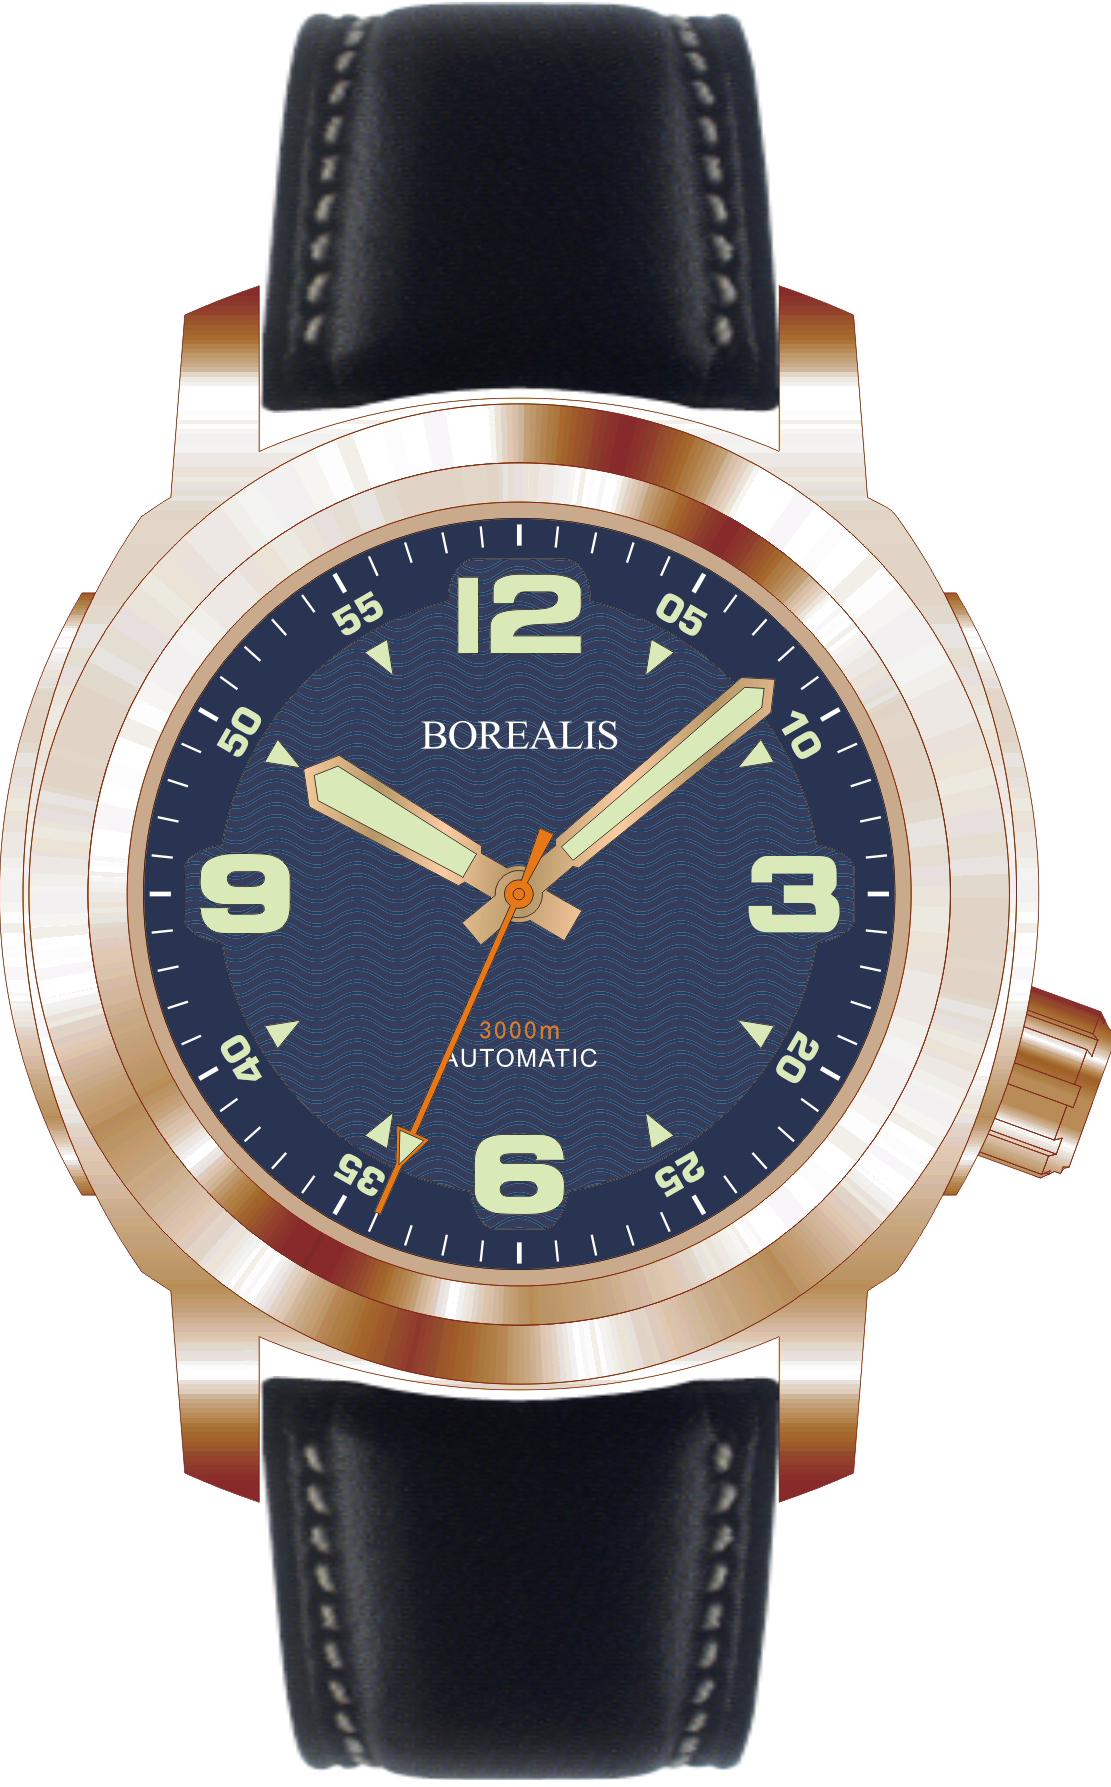 Borealis Batial Bronze CuSn8 Blue 3000m Miyota 9015 Automatic Diver Watch No Date Display